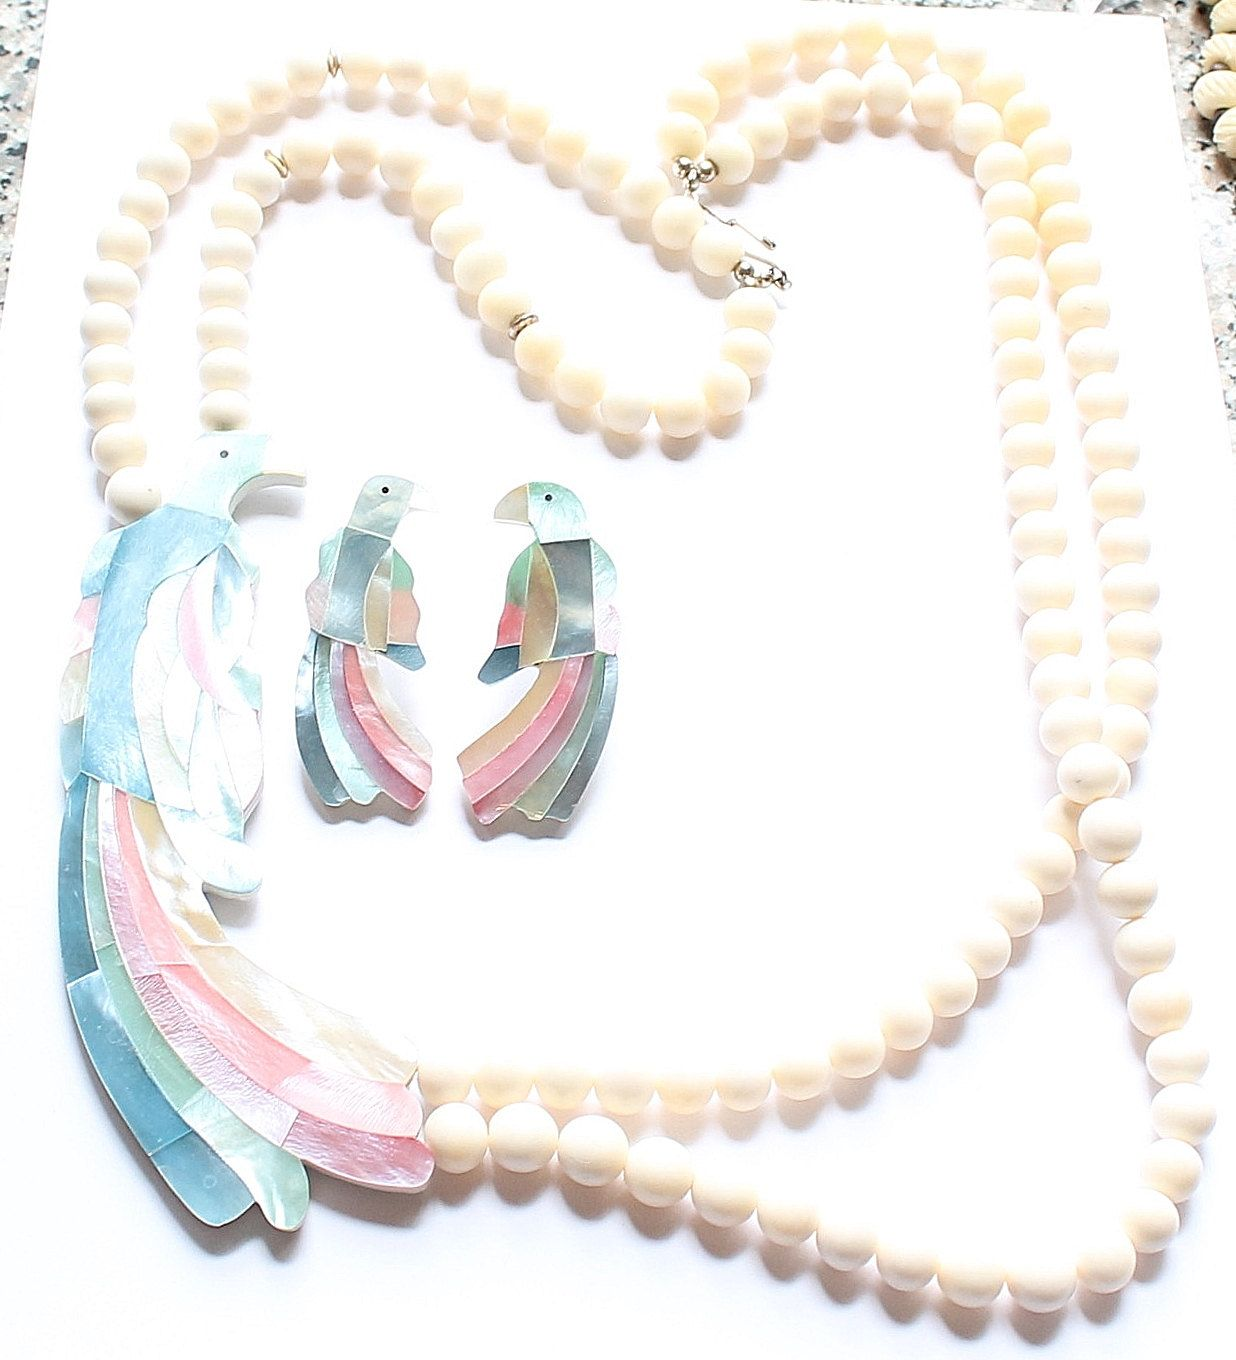 Large, Statement Mother of Pearl Inlay Parrot Bird Pendant Necklace with Matching Earrings by paststore on Etsy